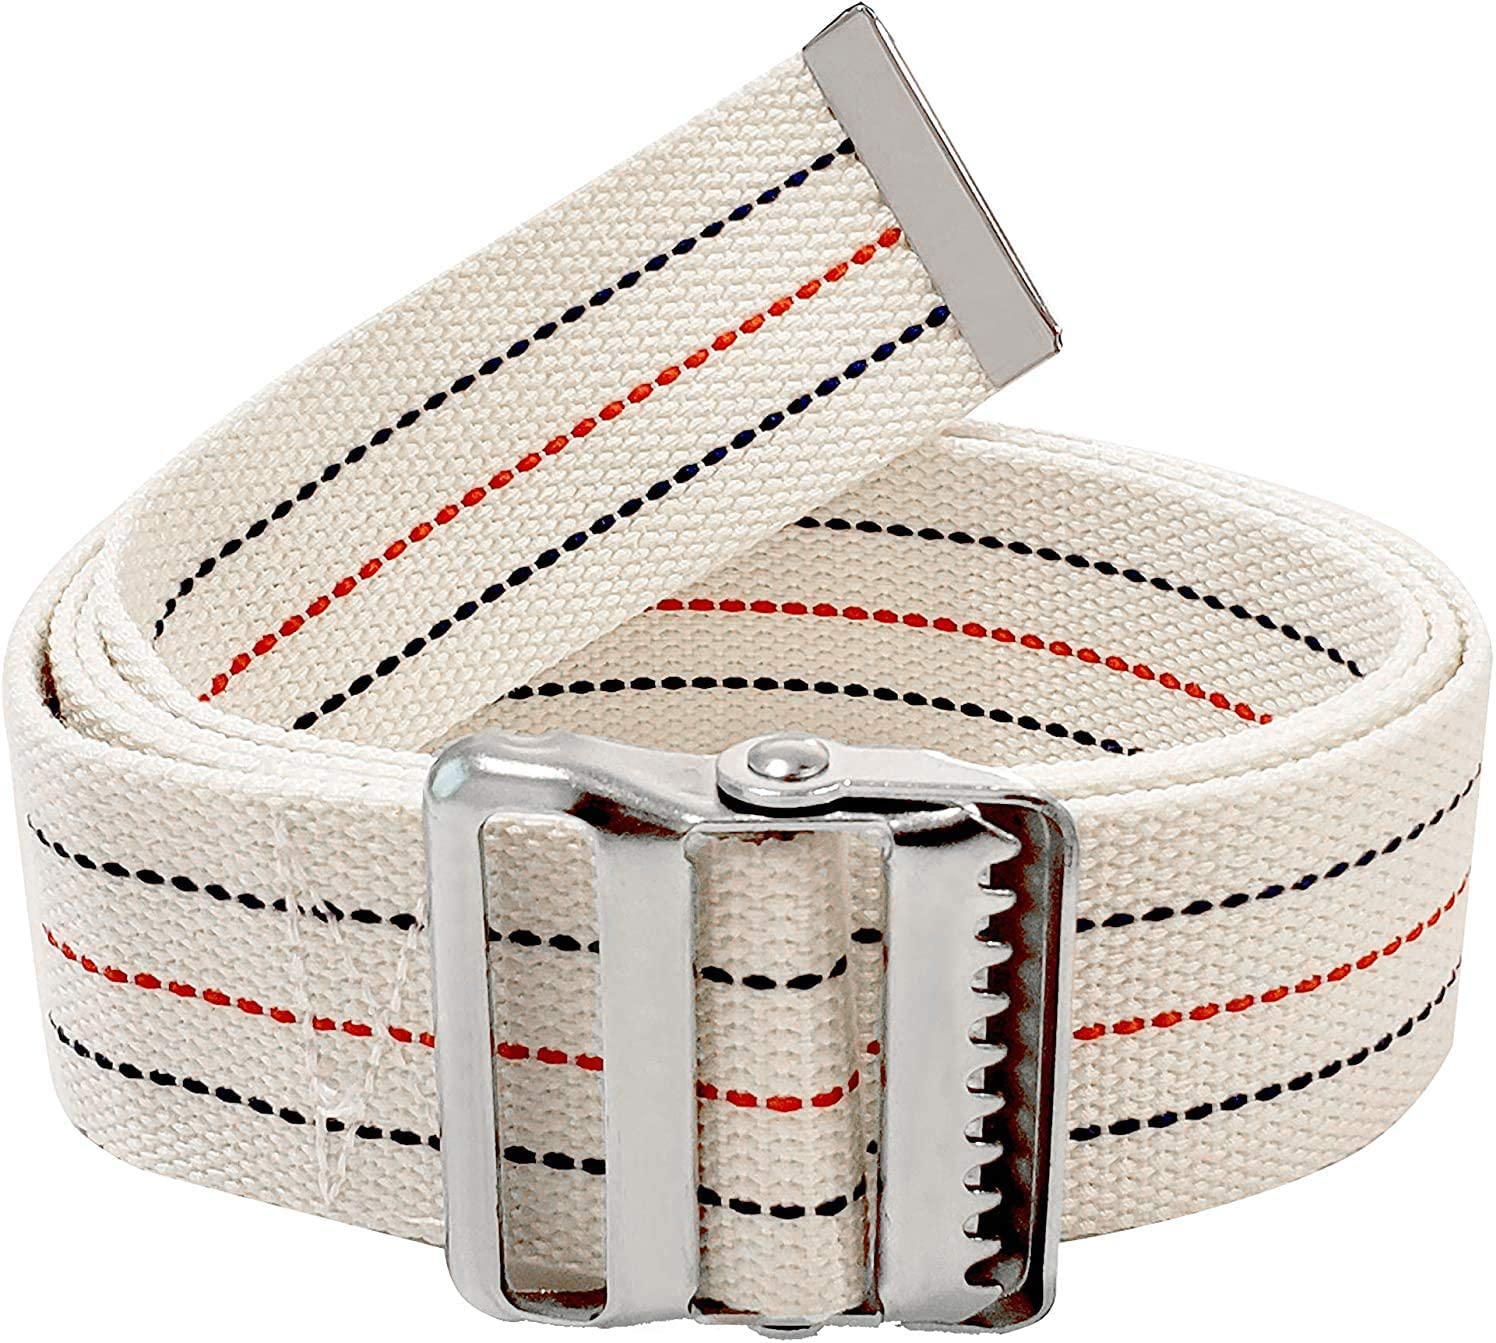 LiftAid Transfer and Walking Gait Belt with Metal Buckle and Belt Loop Holder for Therapist, Nurse, Home Care - 60